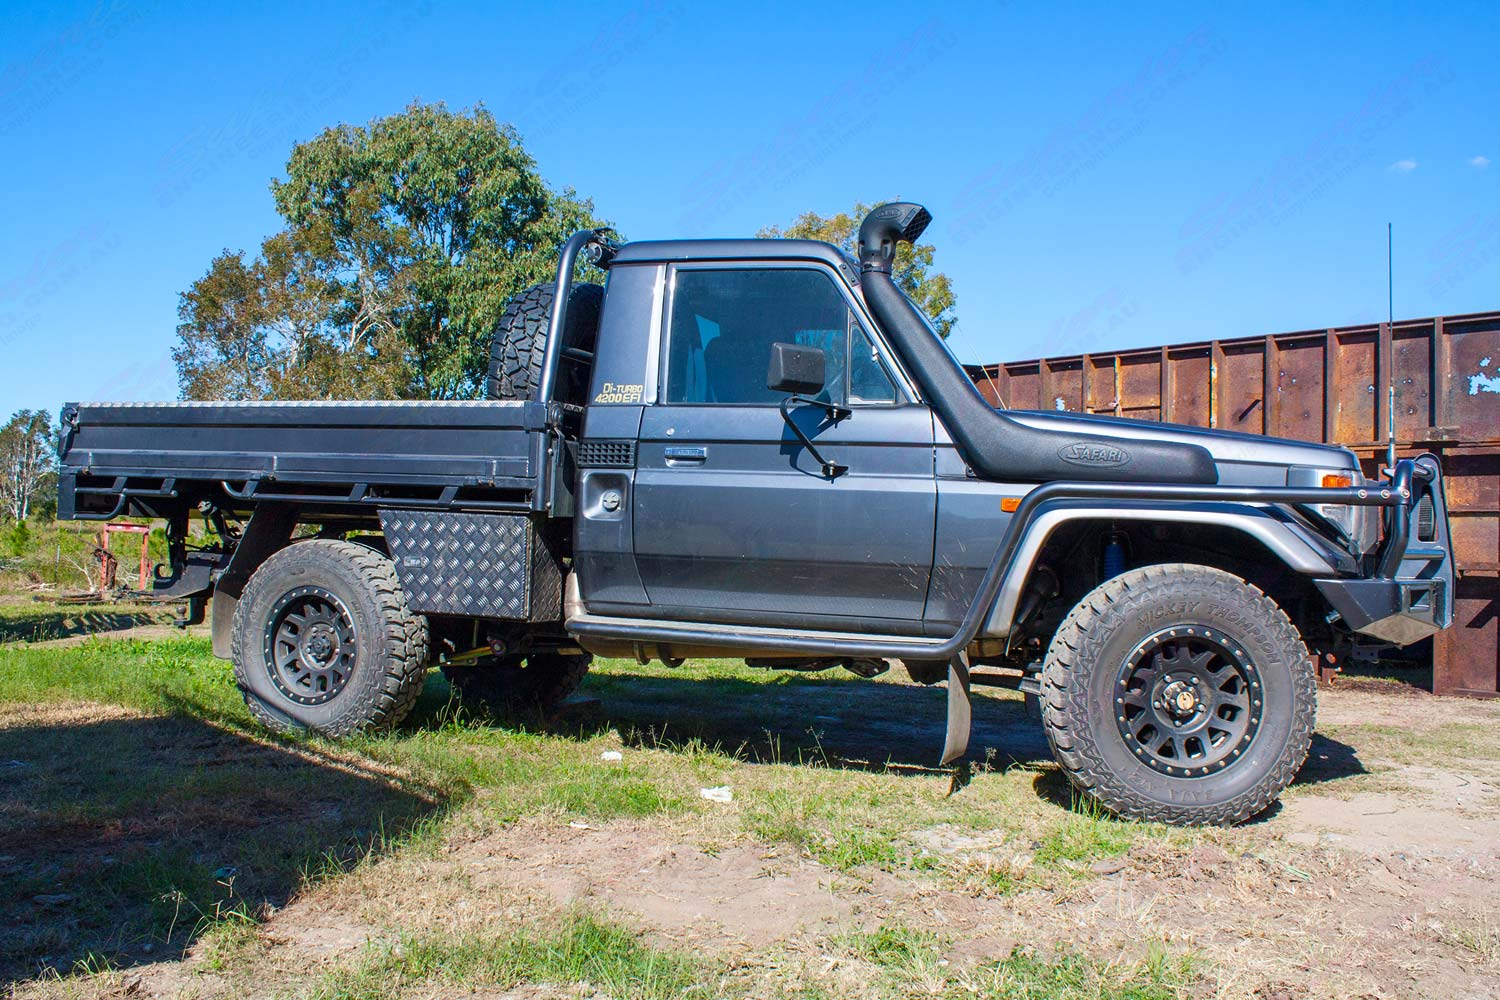 Right side view of a Grey 79 Series Single Cab Toyota Landcruiser at Superior Engineering fitted out with a new rear coil conversion kit and front suspension parts